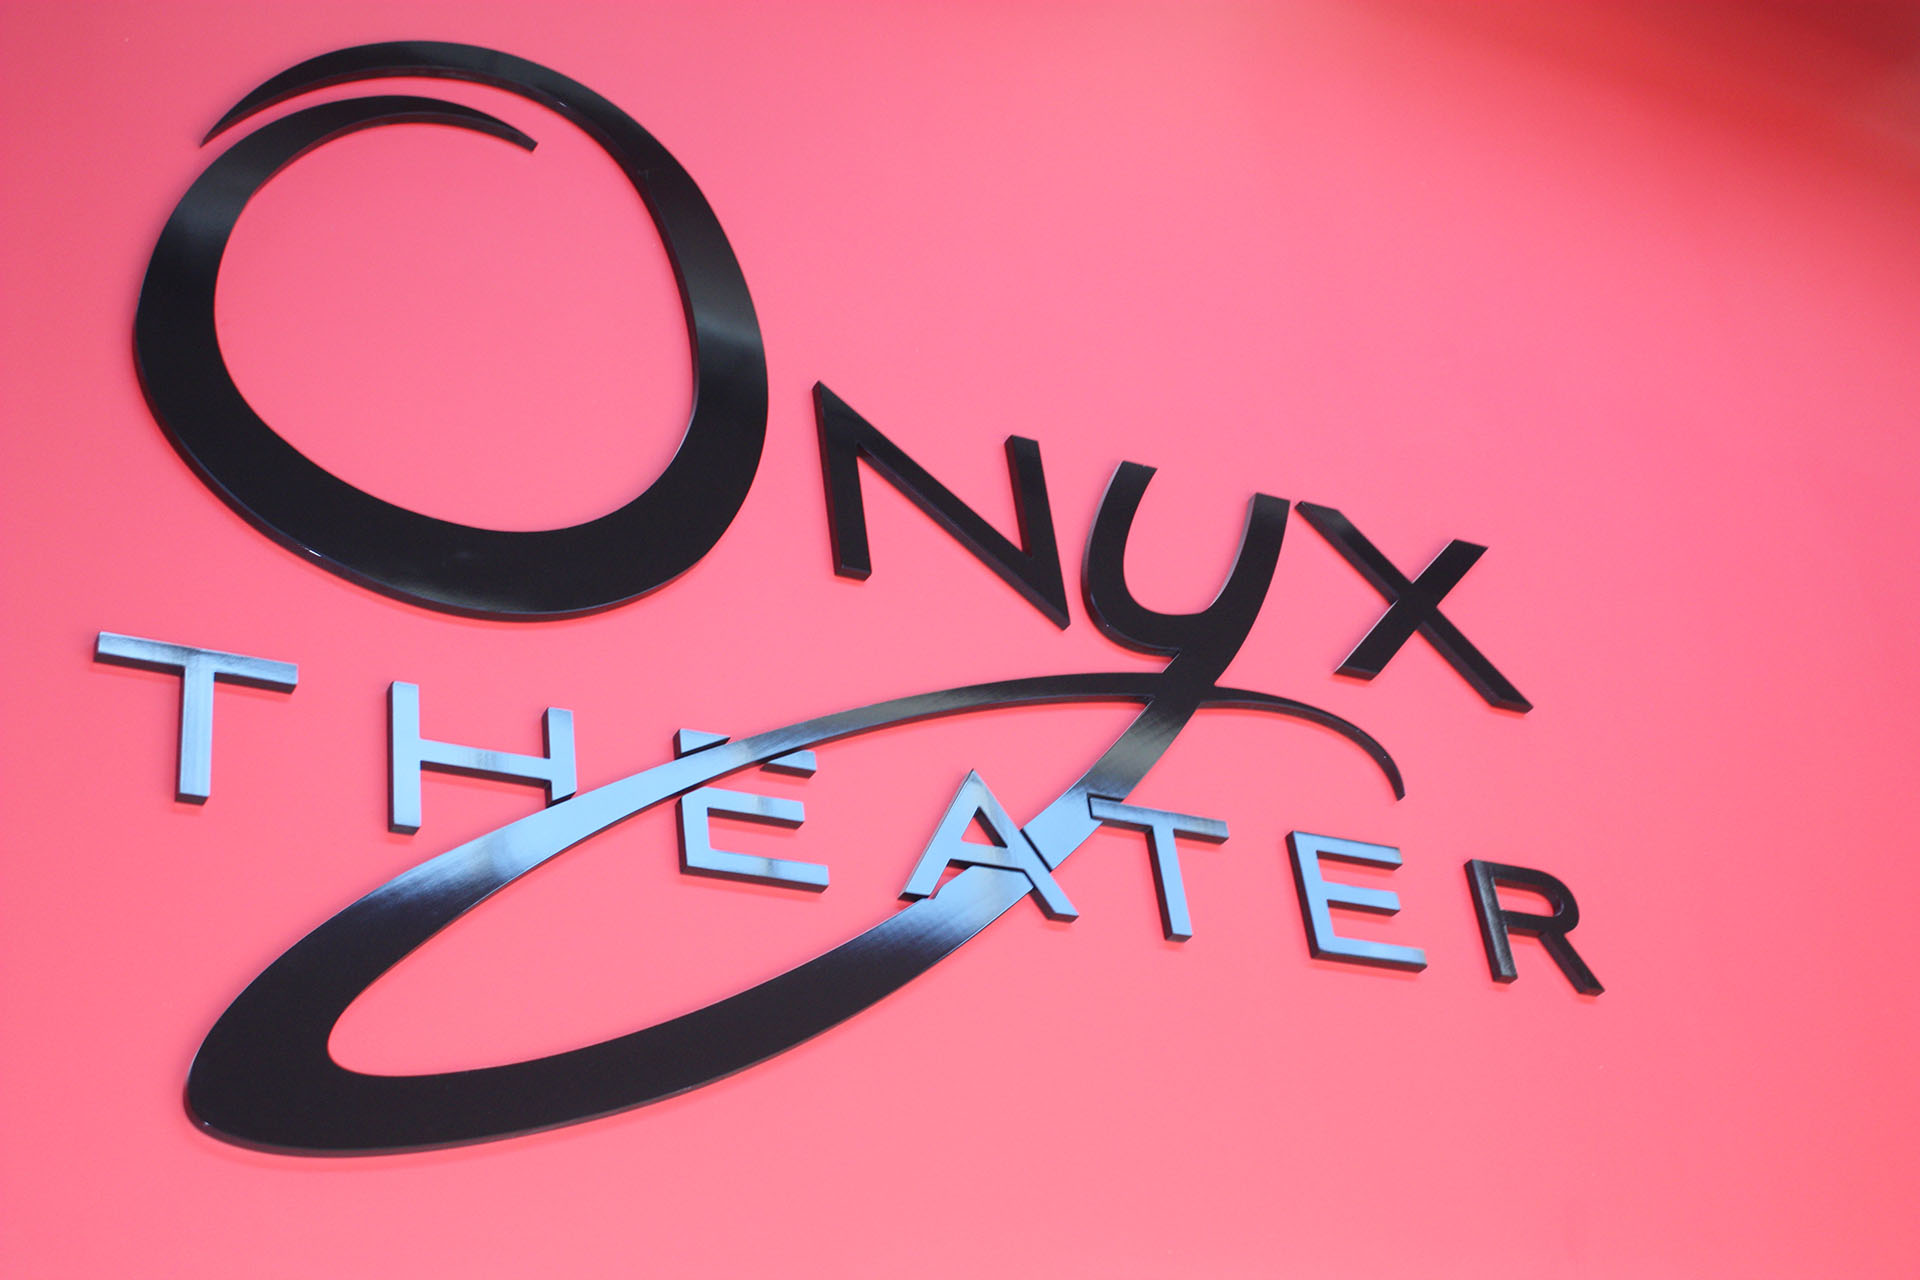 Onyx Theater at Kennesaw State University